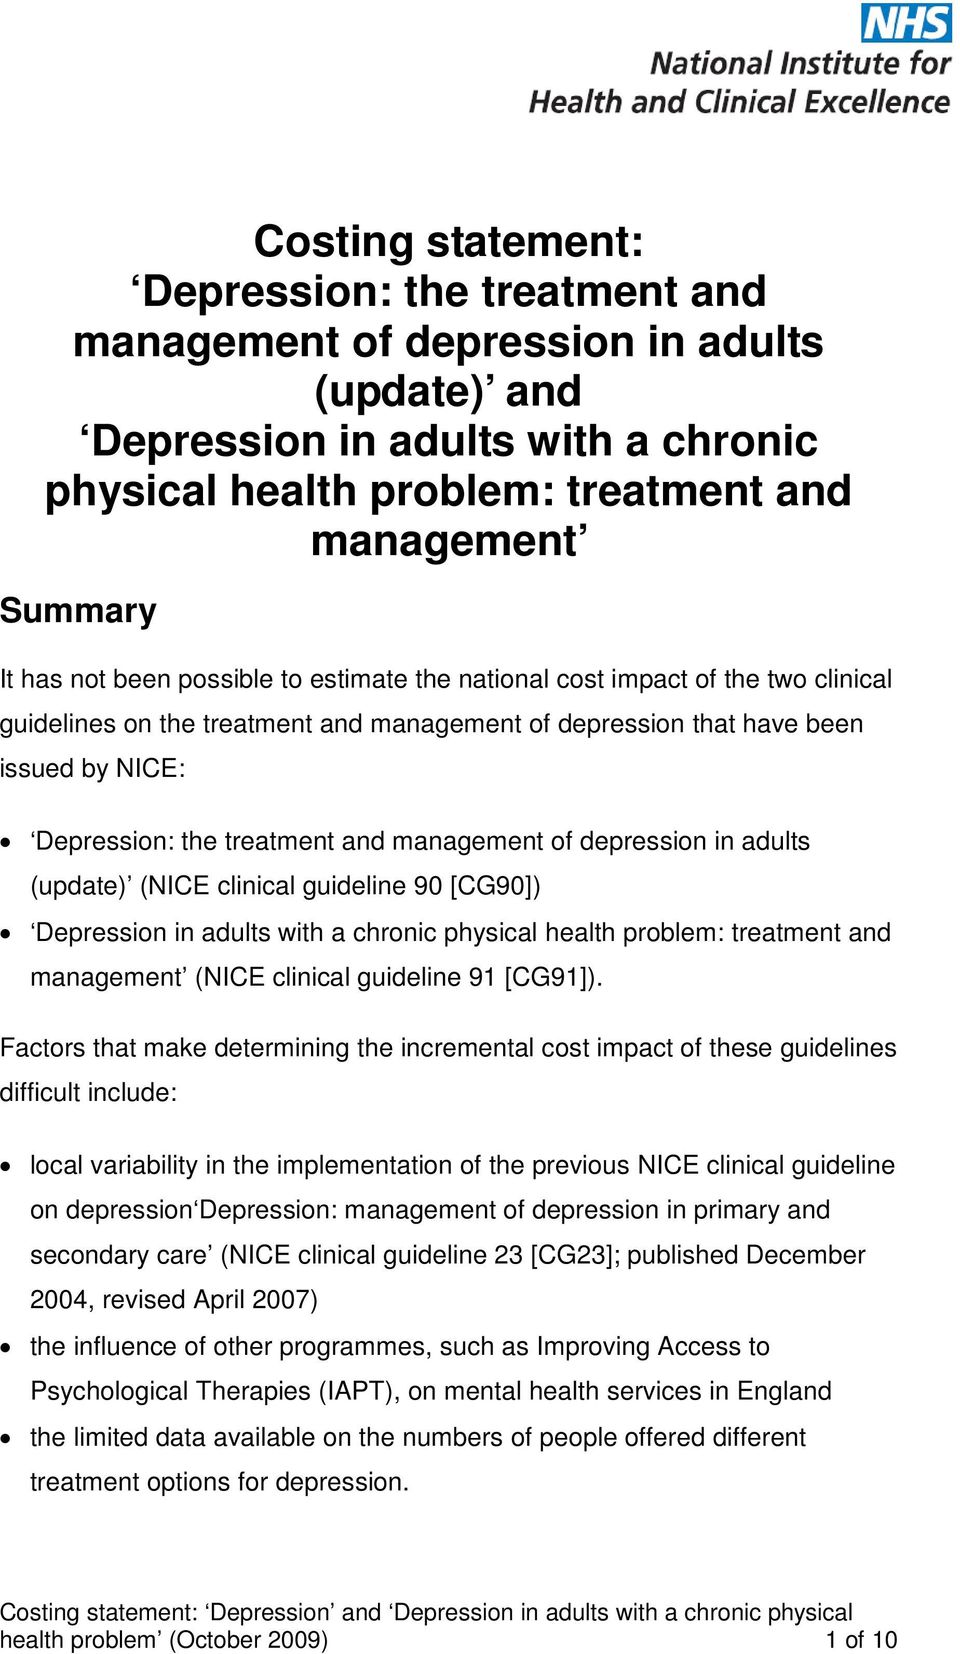 management of depression in adults (update) (NICE clinical guideline 90 [CG90]) Depression in adults with a chronic physical health problem: treatment and management (NICE clinical guideline 91